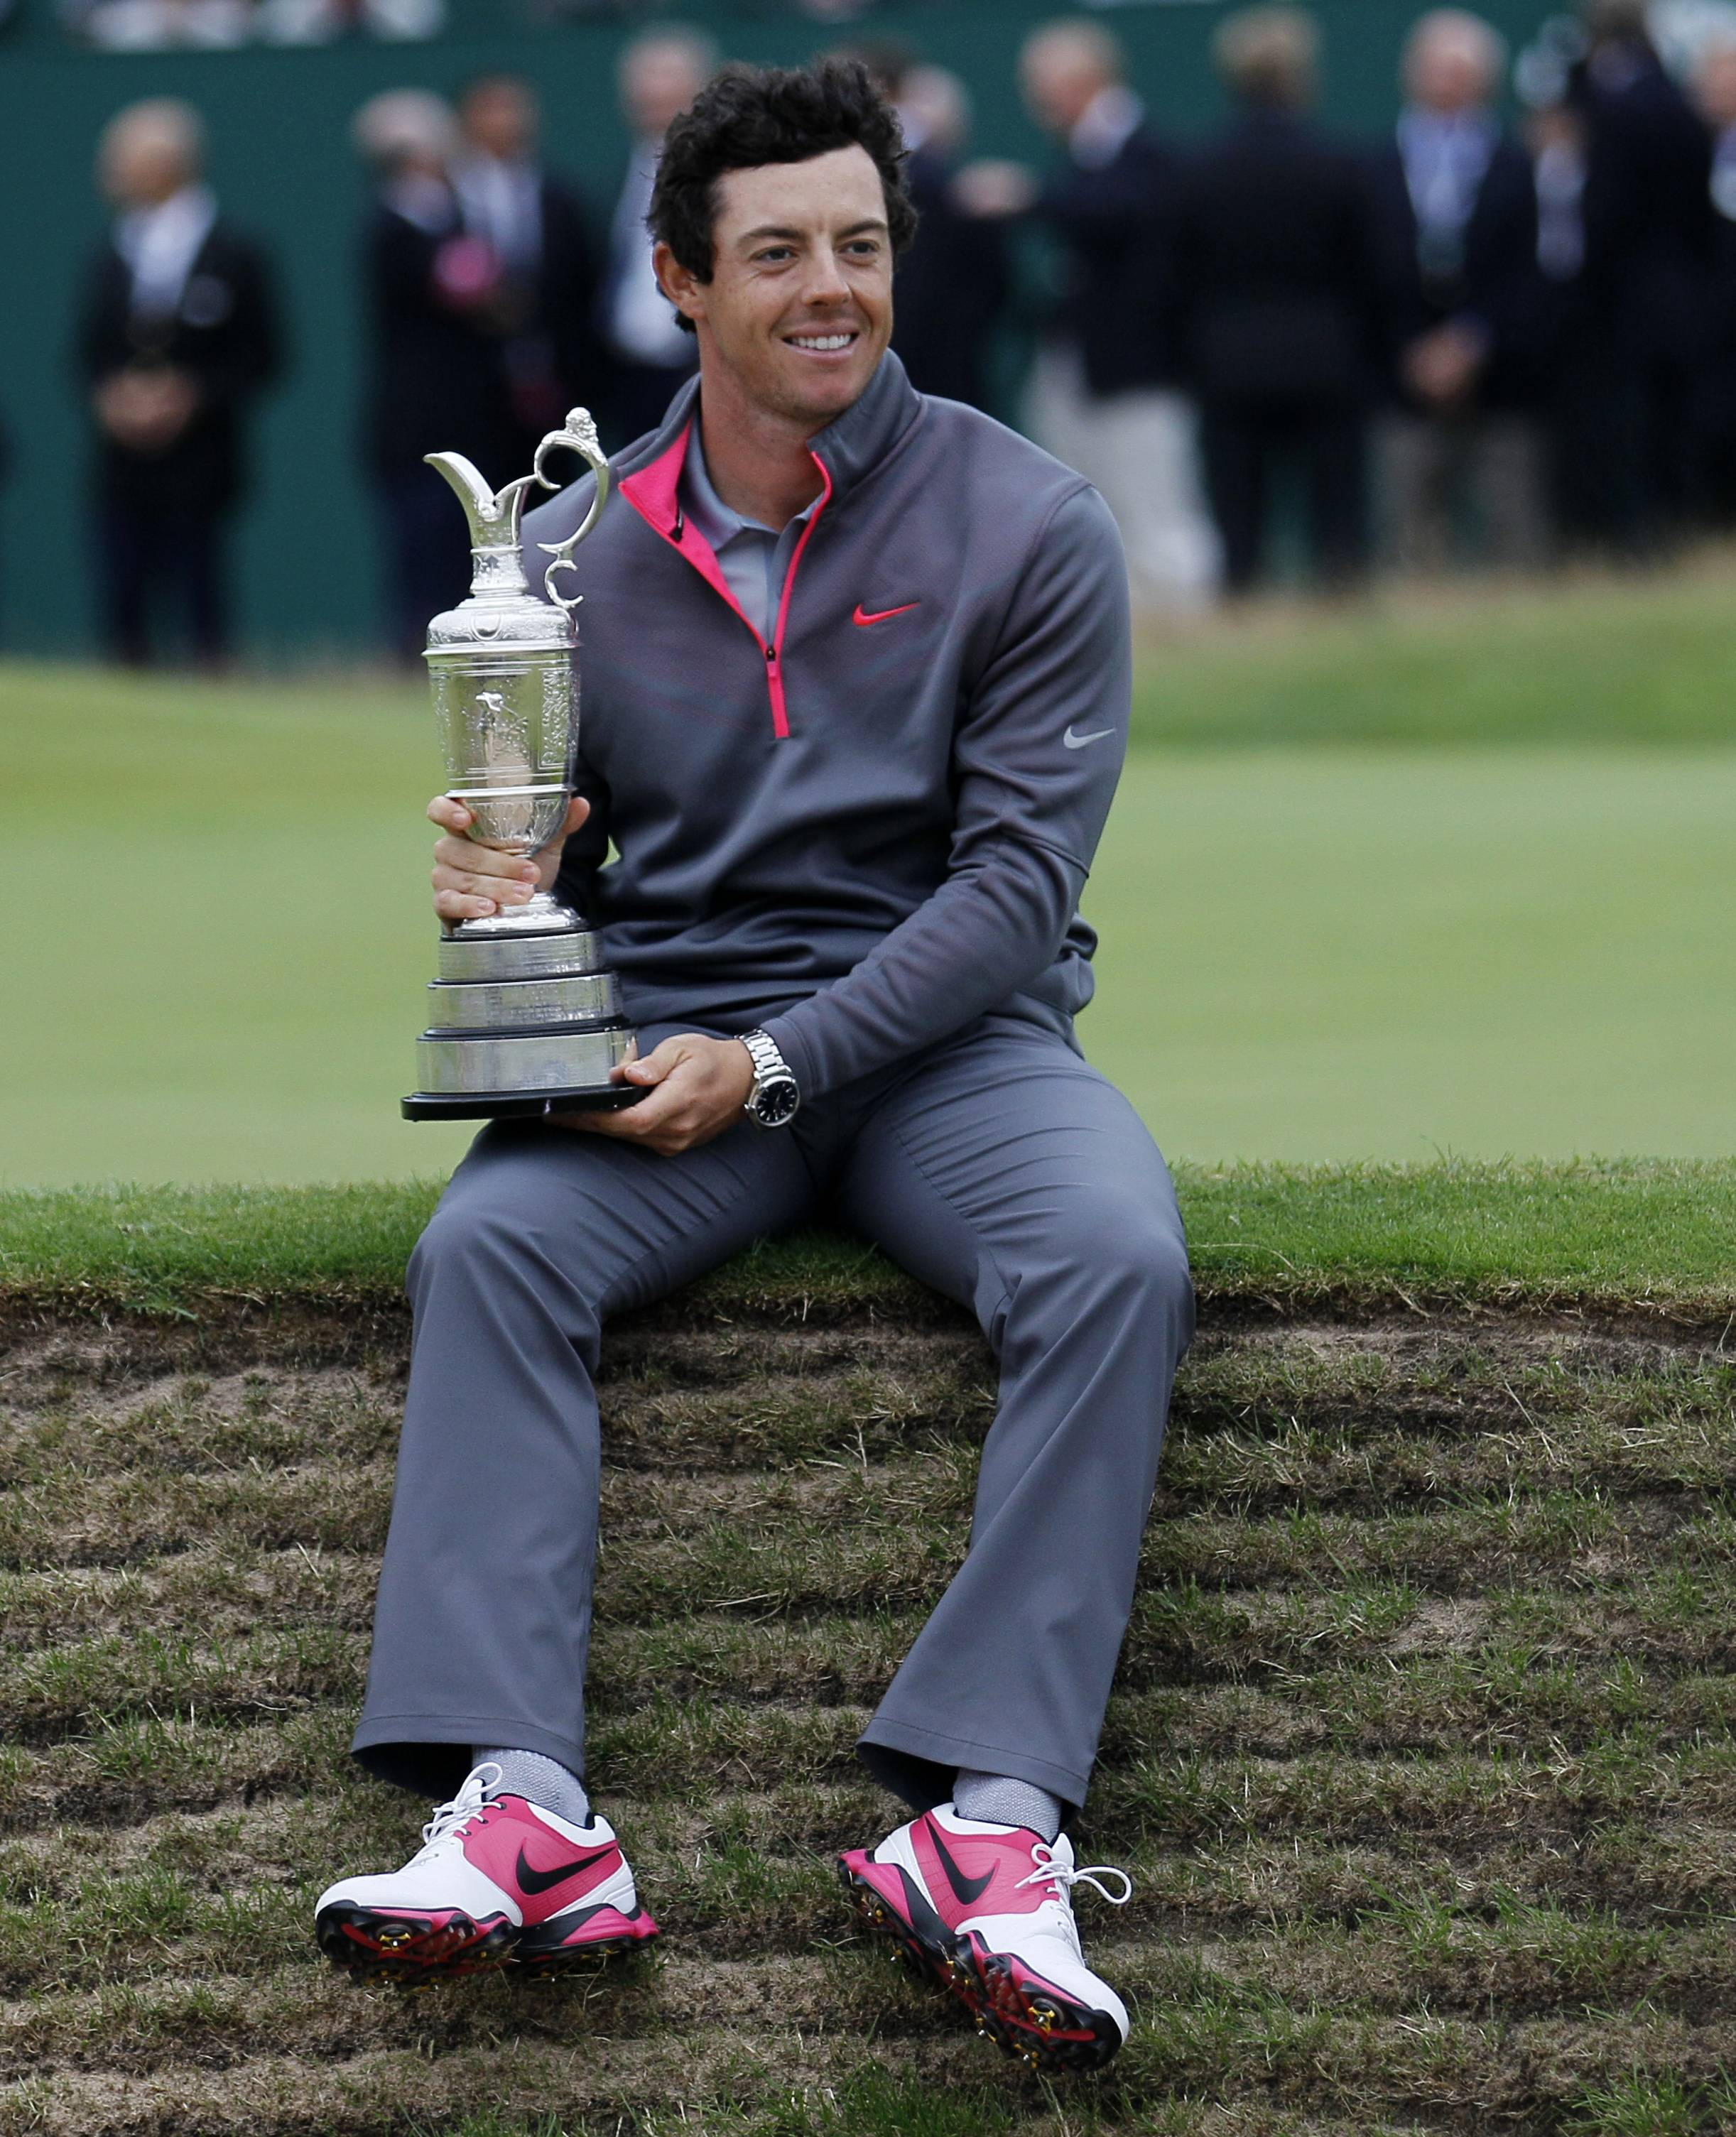 Rory McIlroy of Northern Ireland holds the Claret Jug trophy after winning the British Open Golf championship at the Royal Liverpool golf club, Hoylake, England, Sunday July 20, 2014.